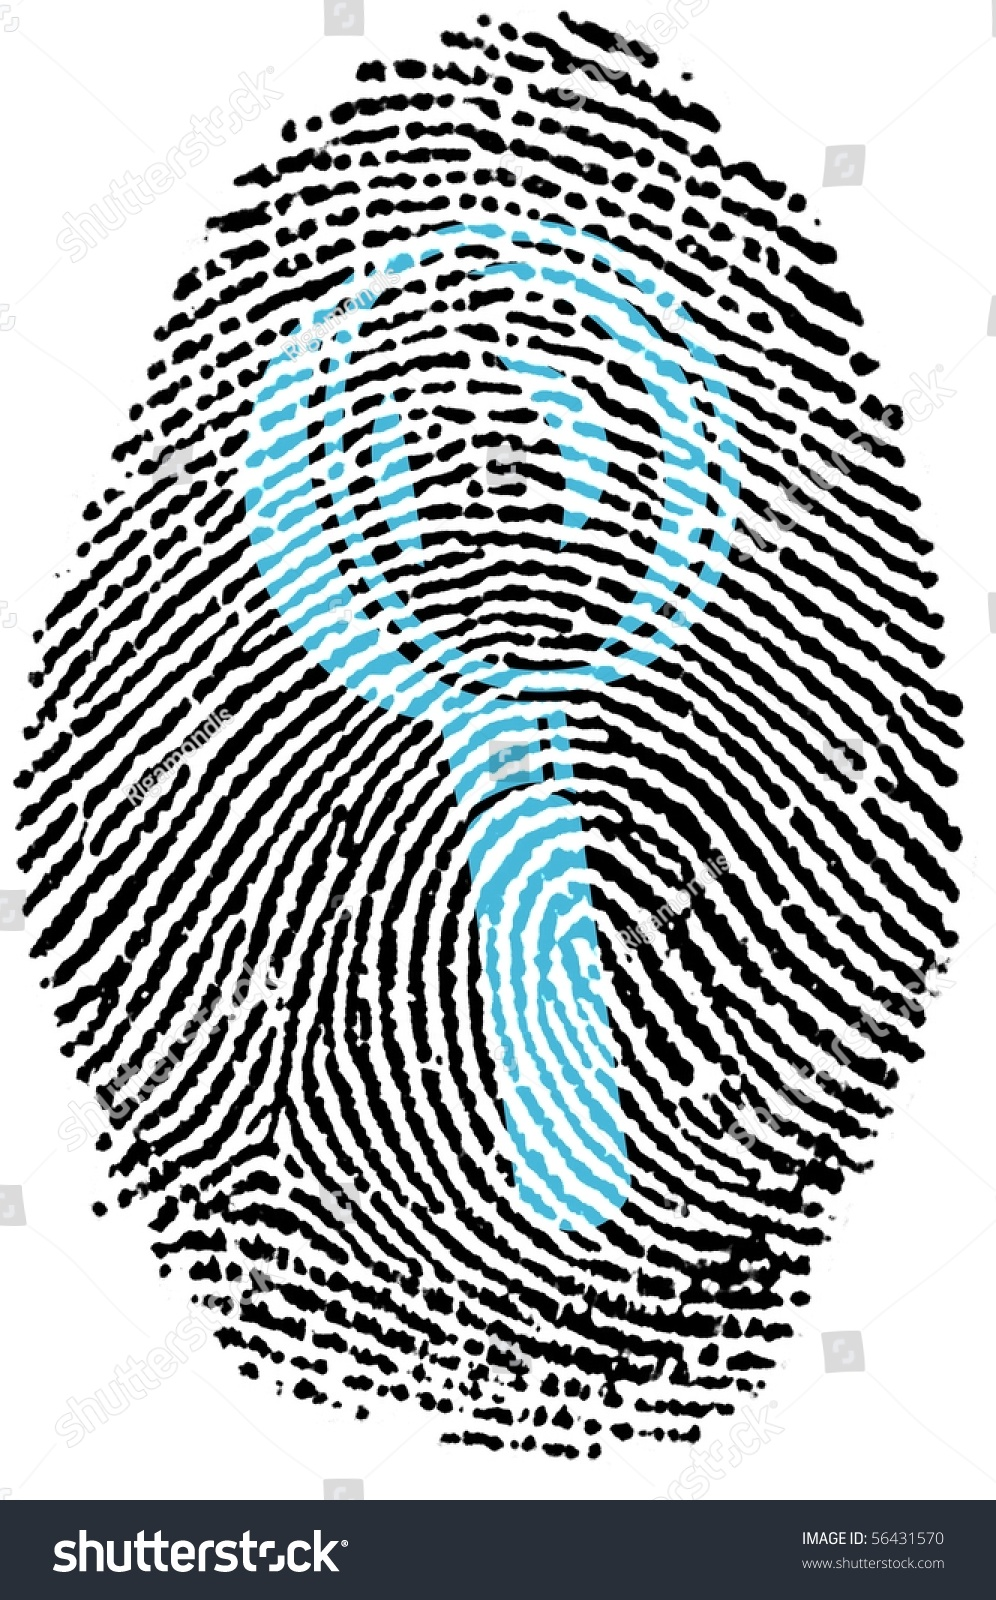 Fingerprint Stamp On White Paper For Search Capabilities